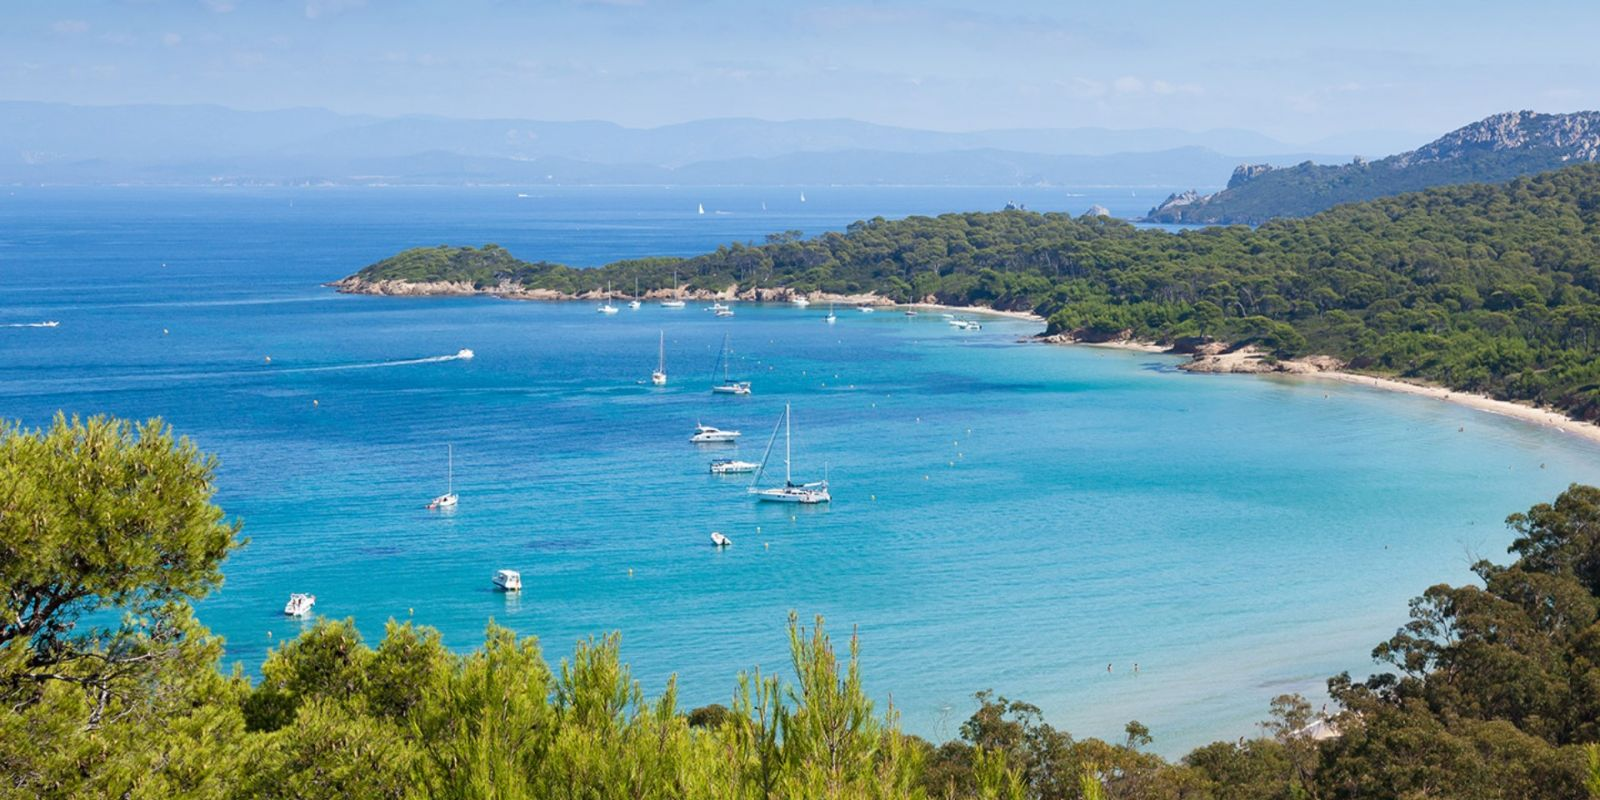 https://www.talamare.com/medias/View of a bay on the island of Porquerolles during a French Riviera yacht charter